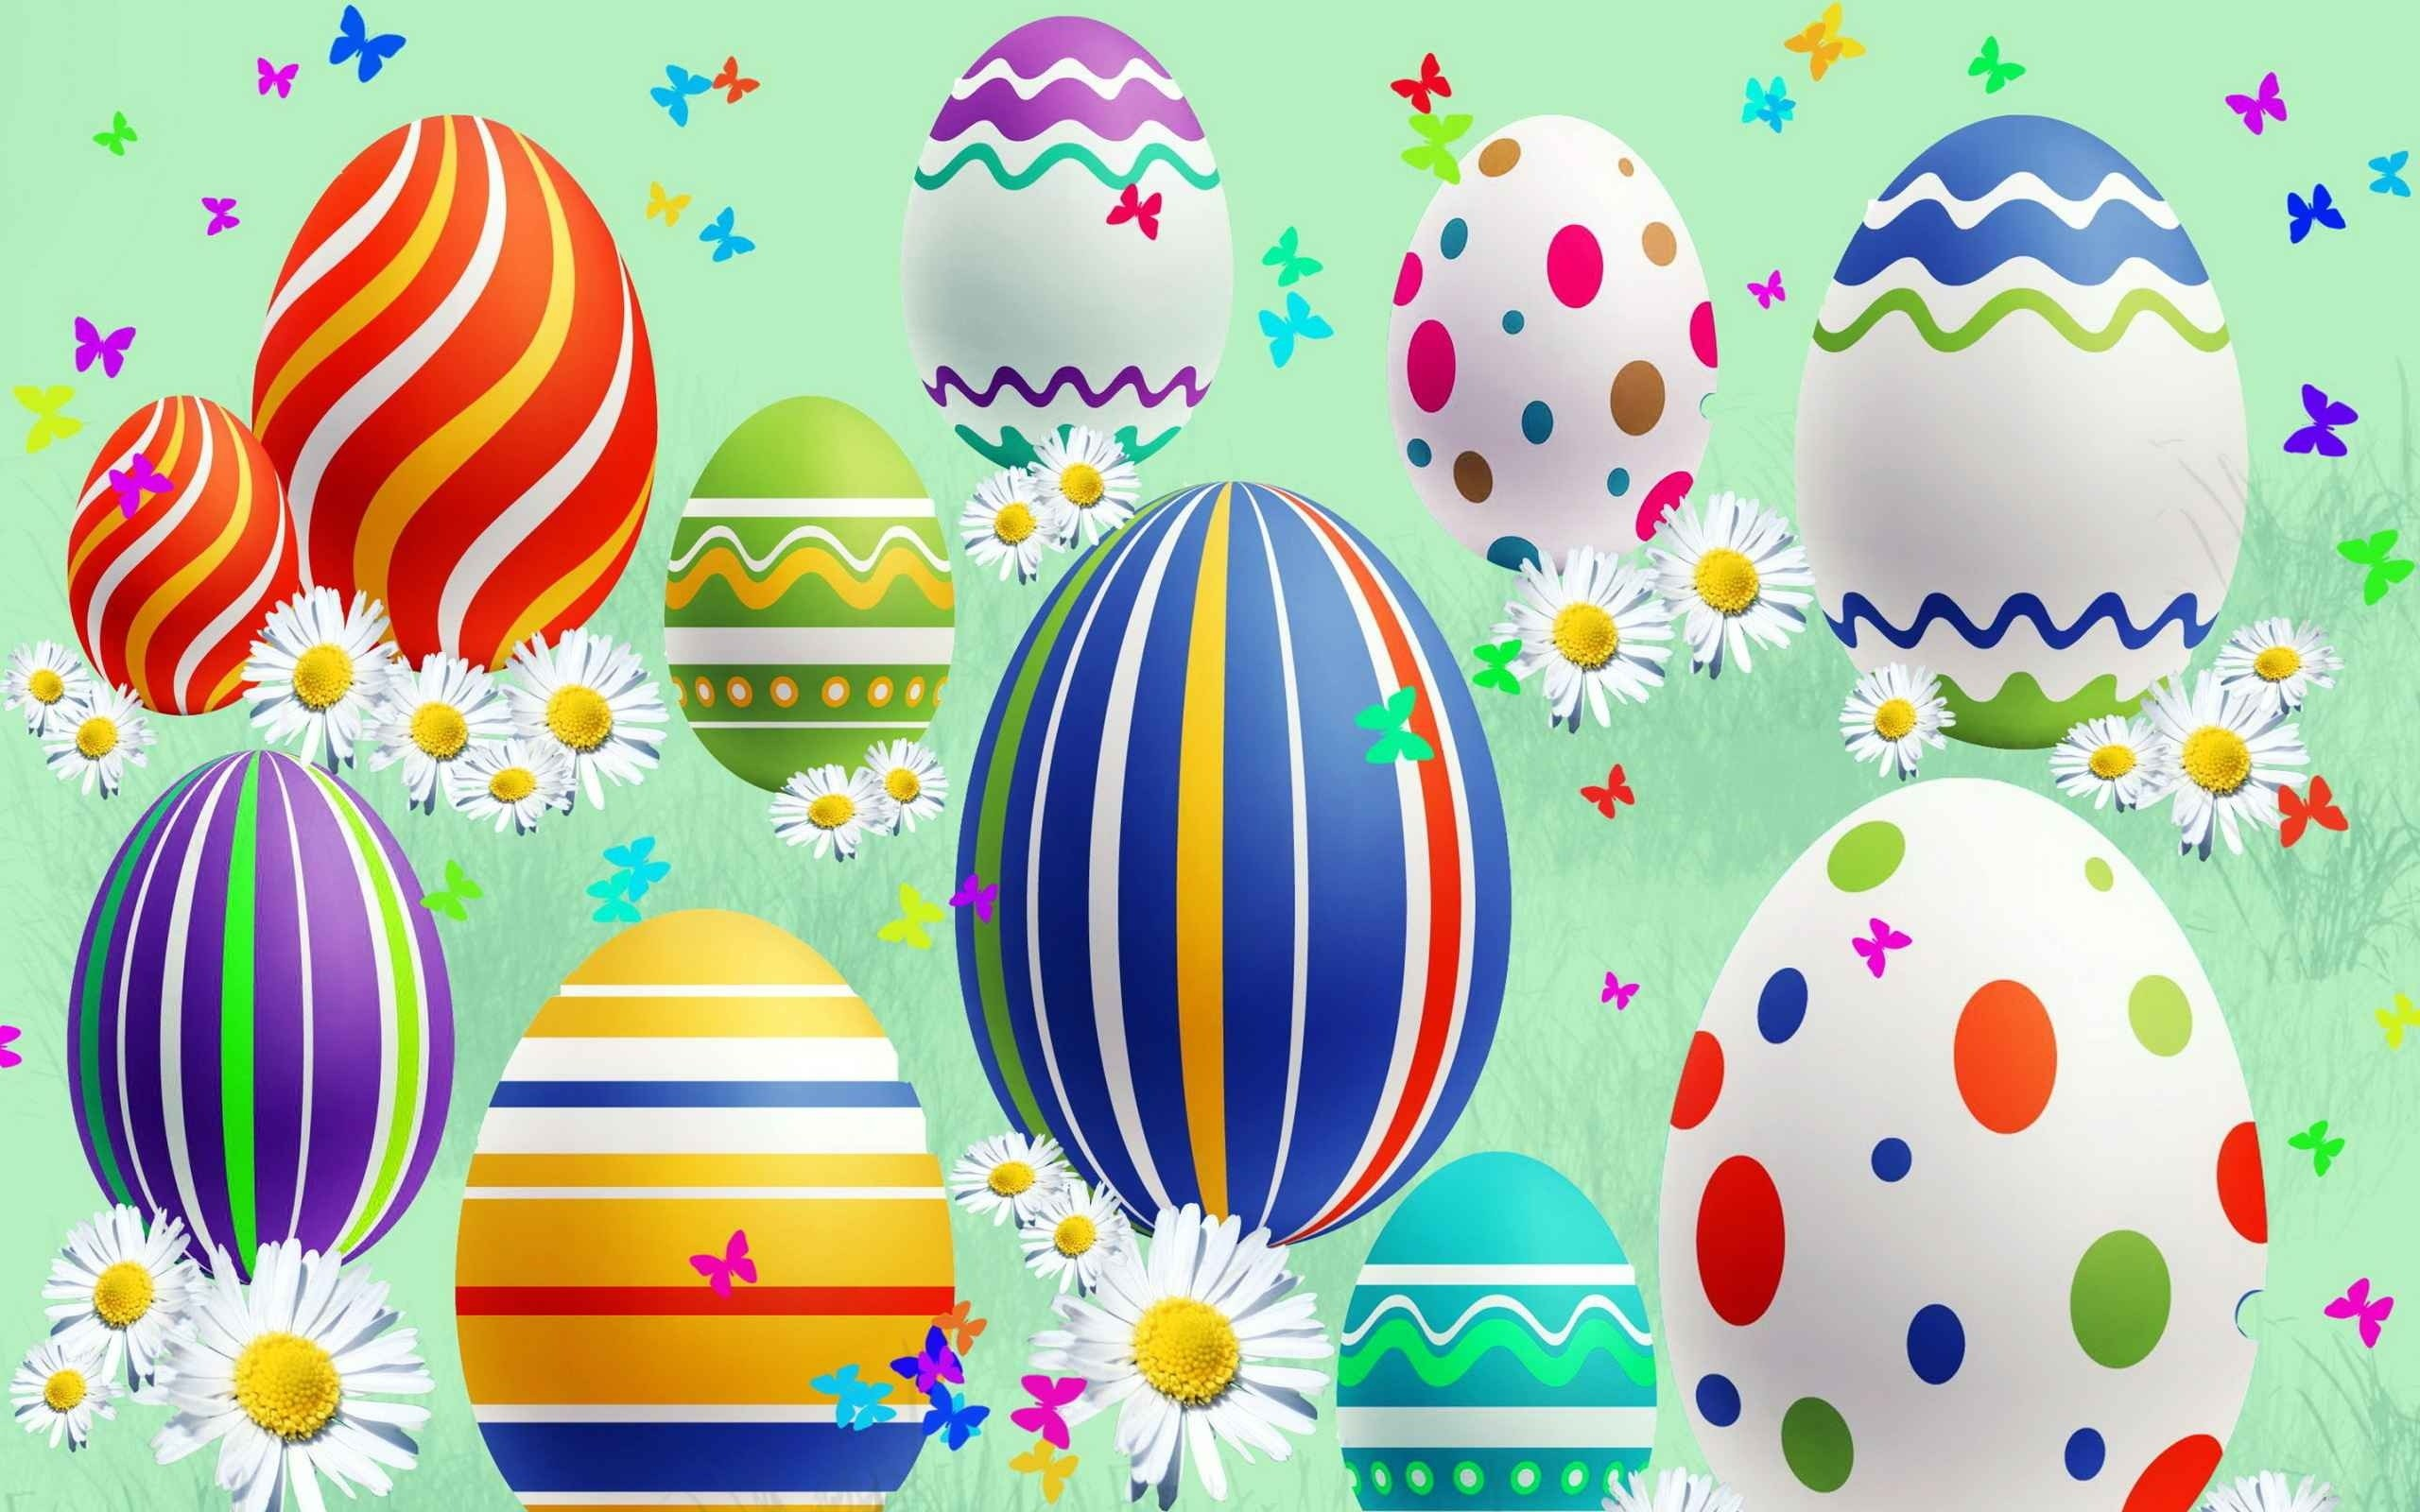 2560x1600 Vector Graphics, Hot Air Balloon, Easter Bunny, Illustration, Easter Egg  Wallpaper in